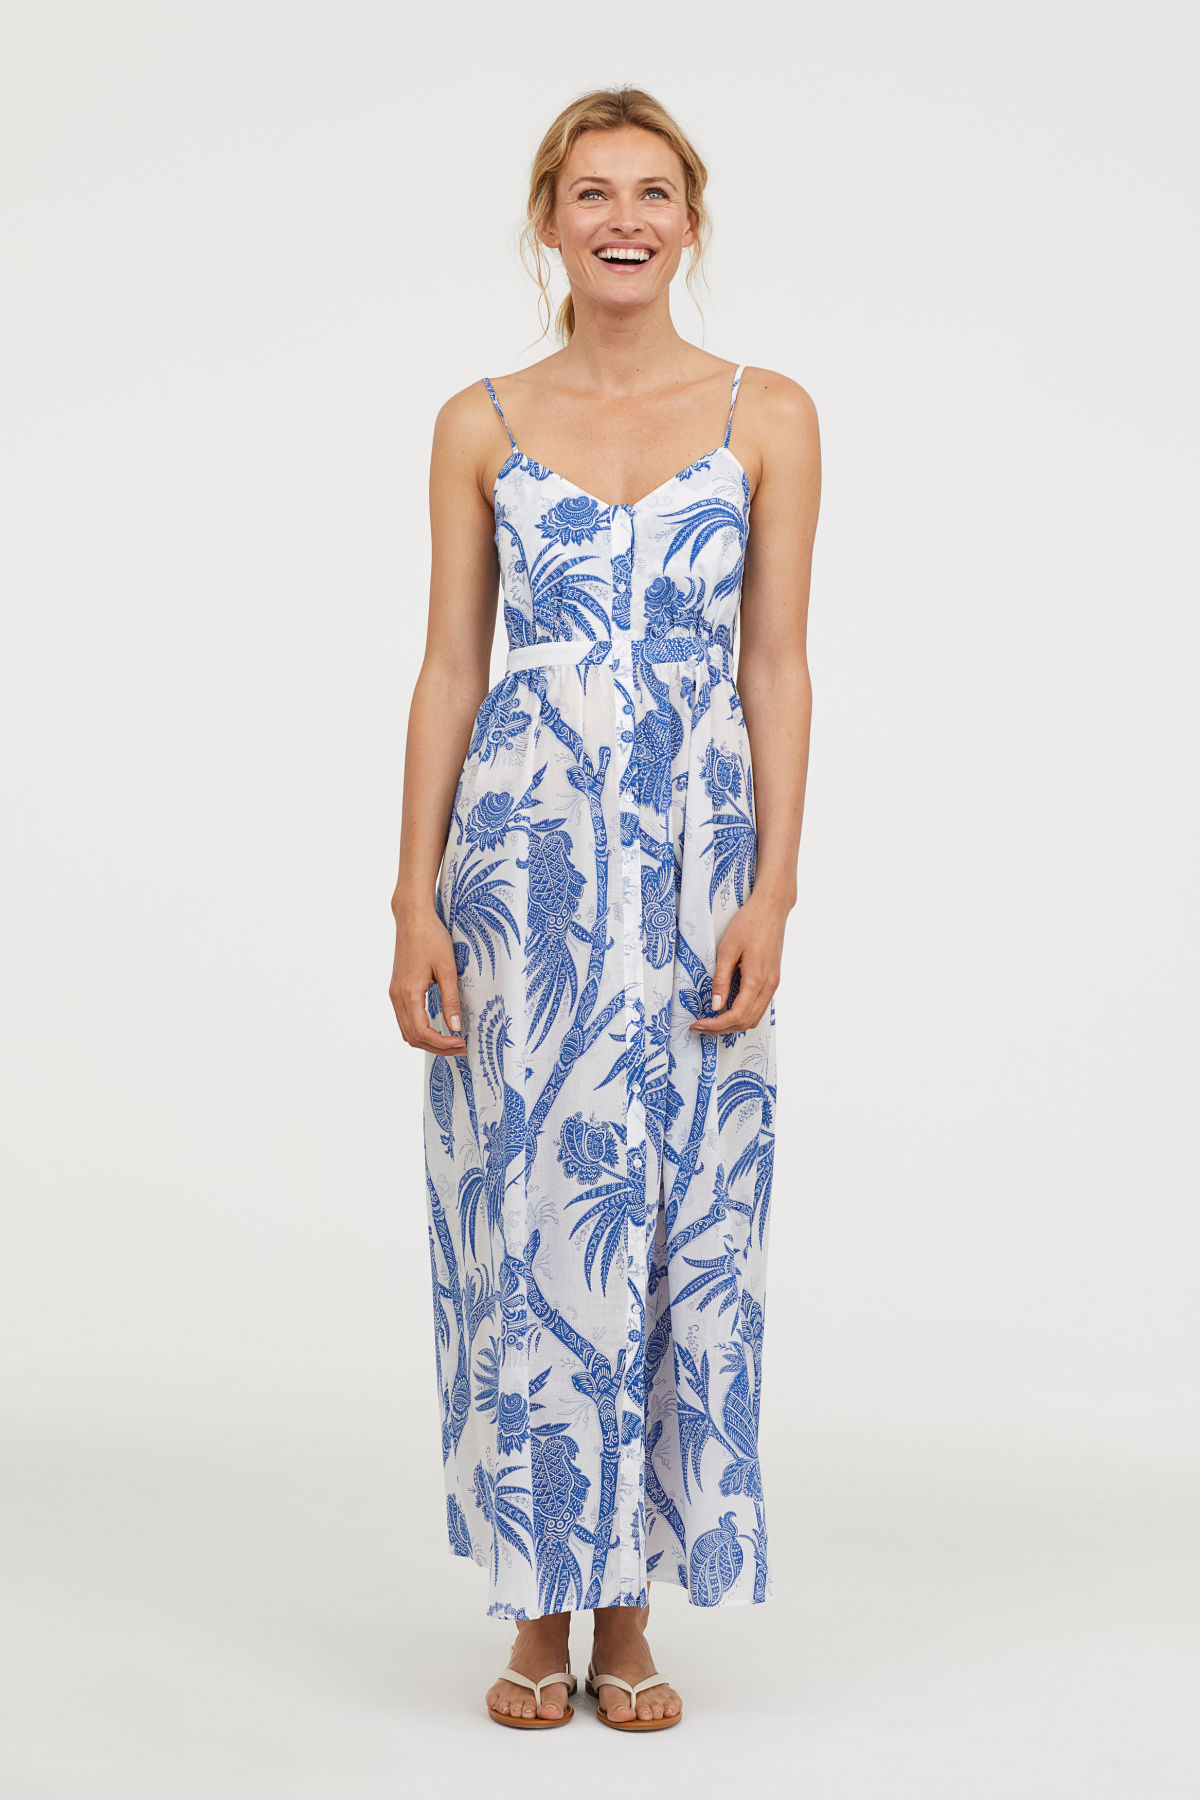 H&M Cotton Maxi Dress